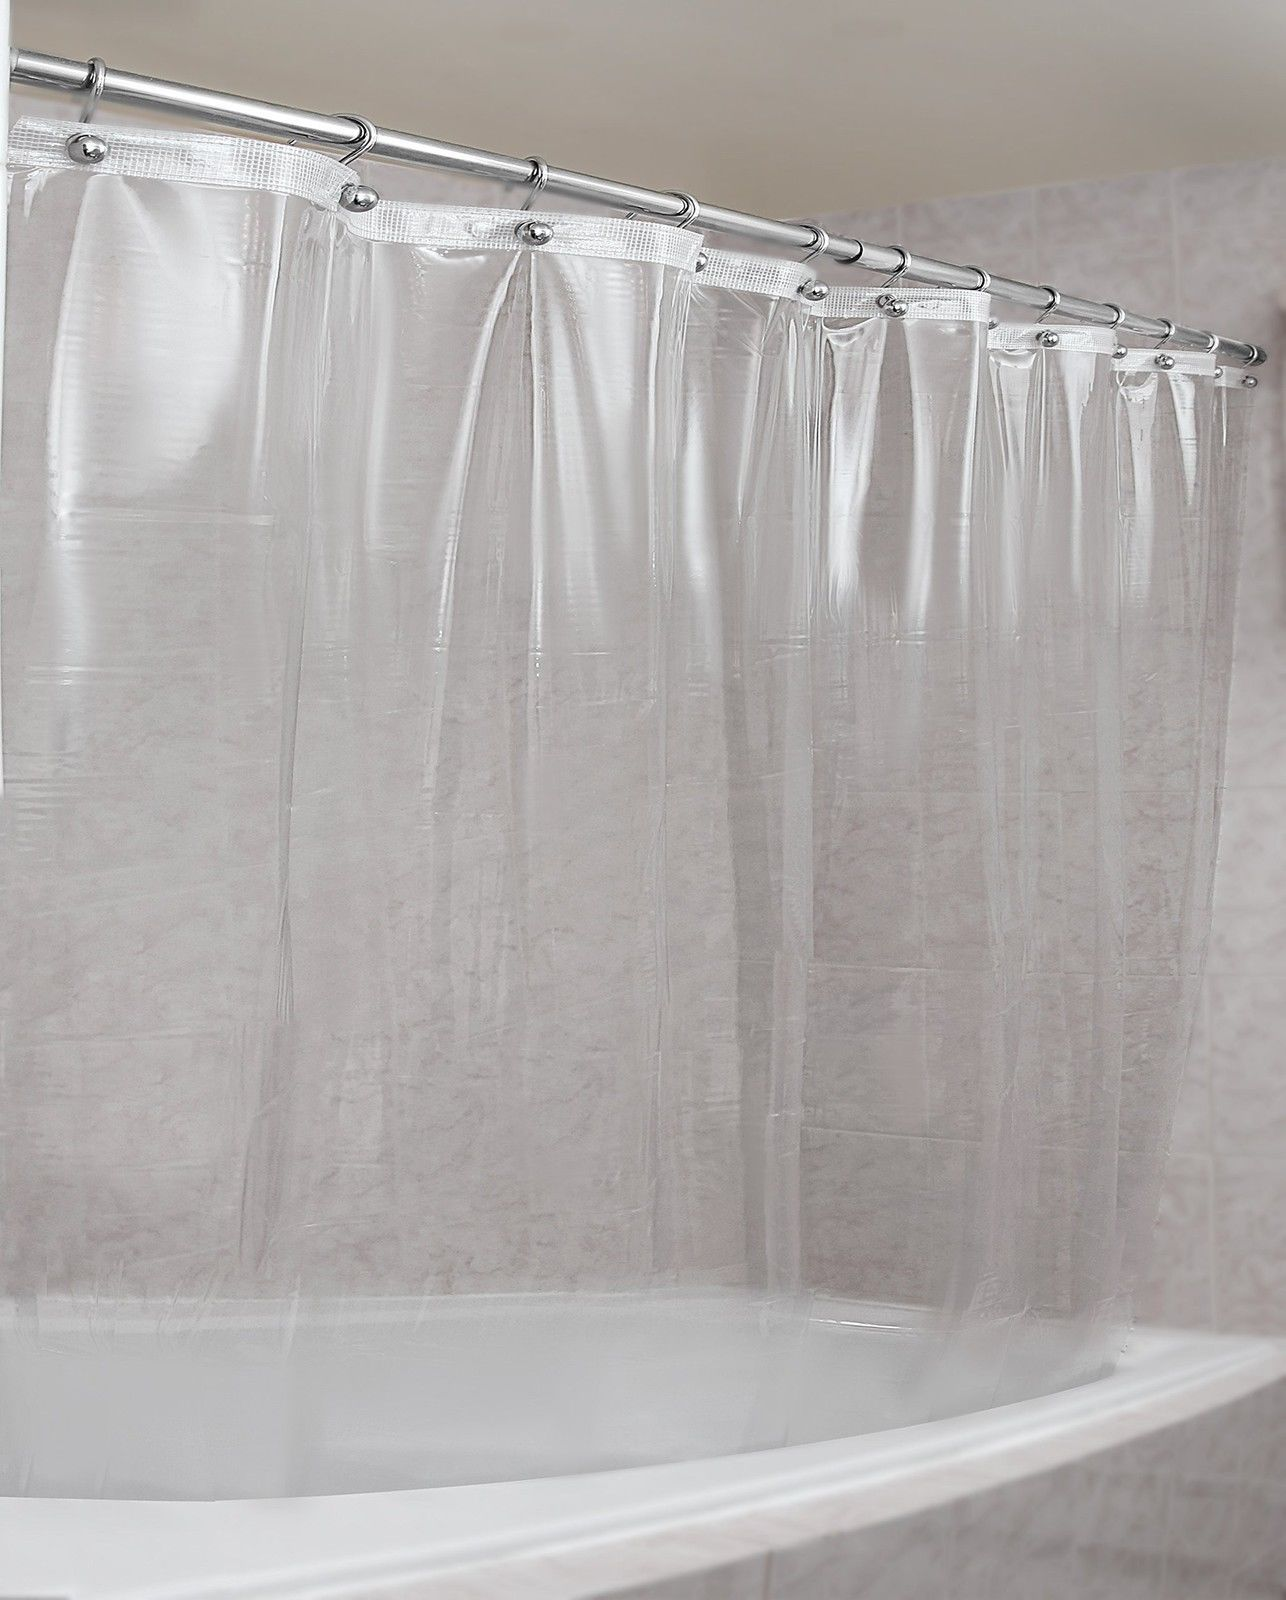 Black Fabric Shower Curtain Waterproof Mold Mildew Resistant East Care Curtains